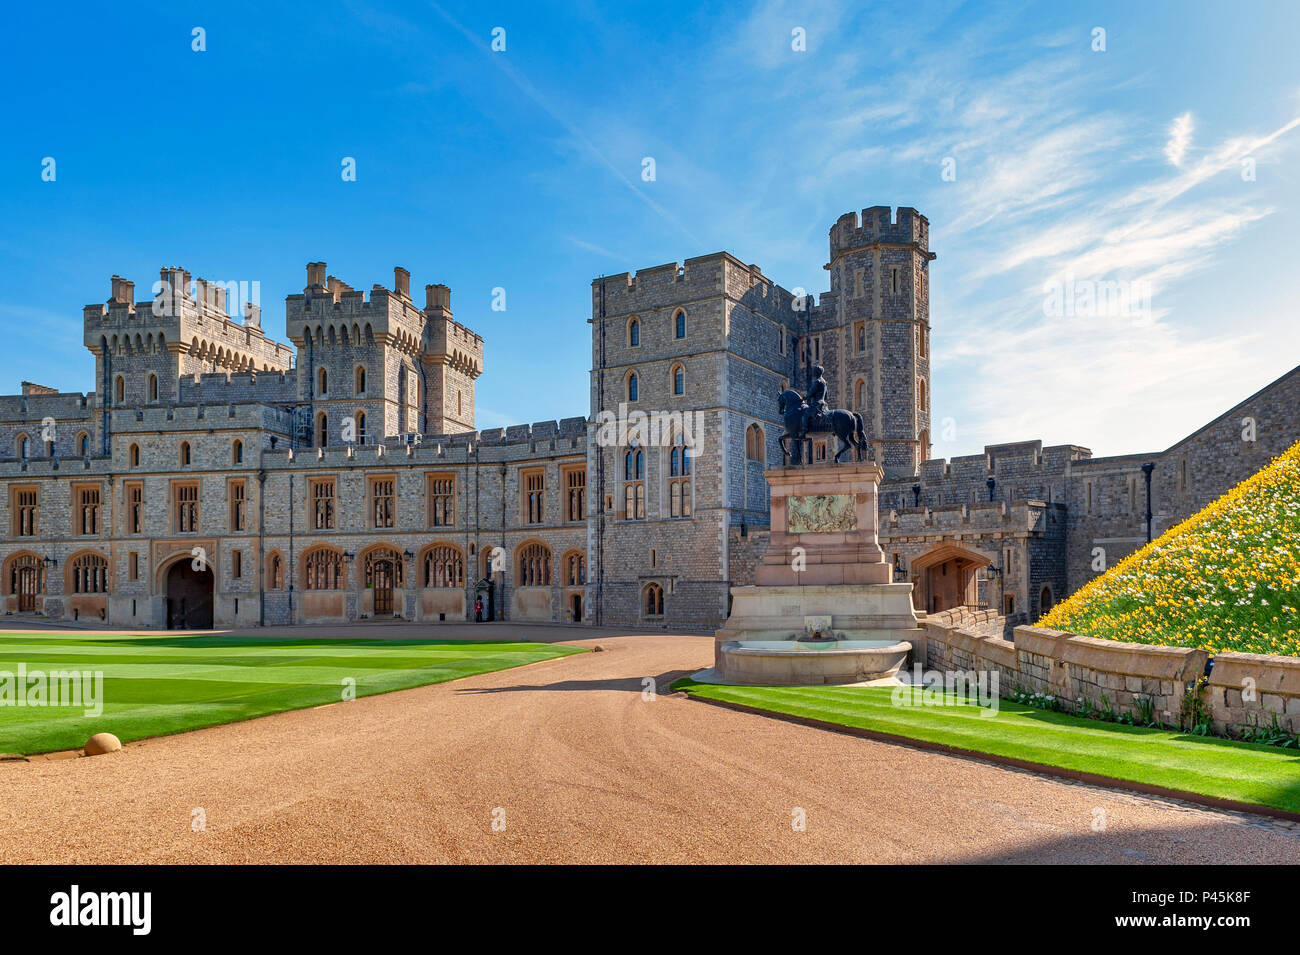 Group of buildings with King Charles II Statue at The Upper Ward and The Quadrangle of Windsor Castle, a royal residence at Windsor in UK - Stock Image